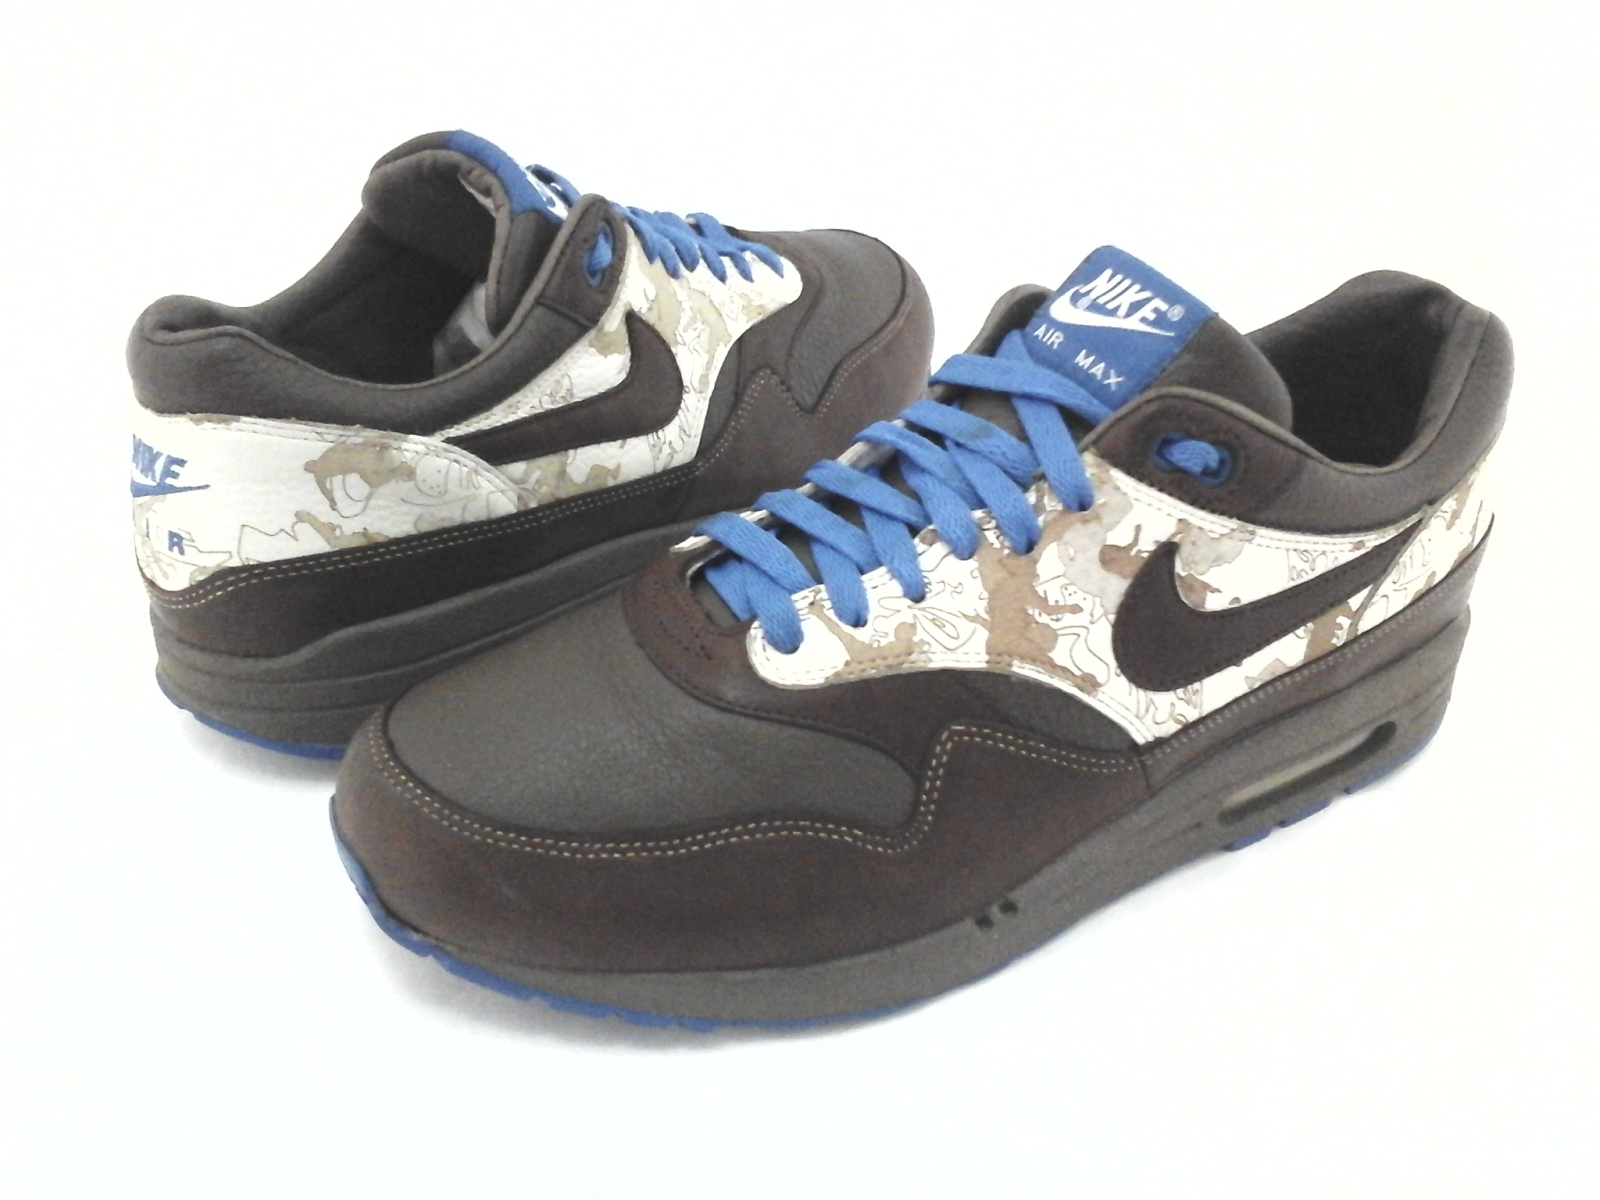 Details about NIKE Air Max 1 Sneakers Brown Leather 2005 309740 Truques Mens US 10.544.5 RARE